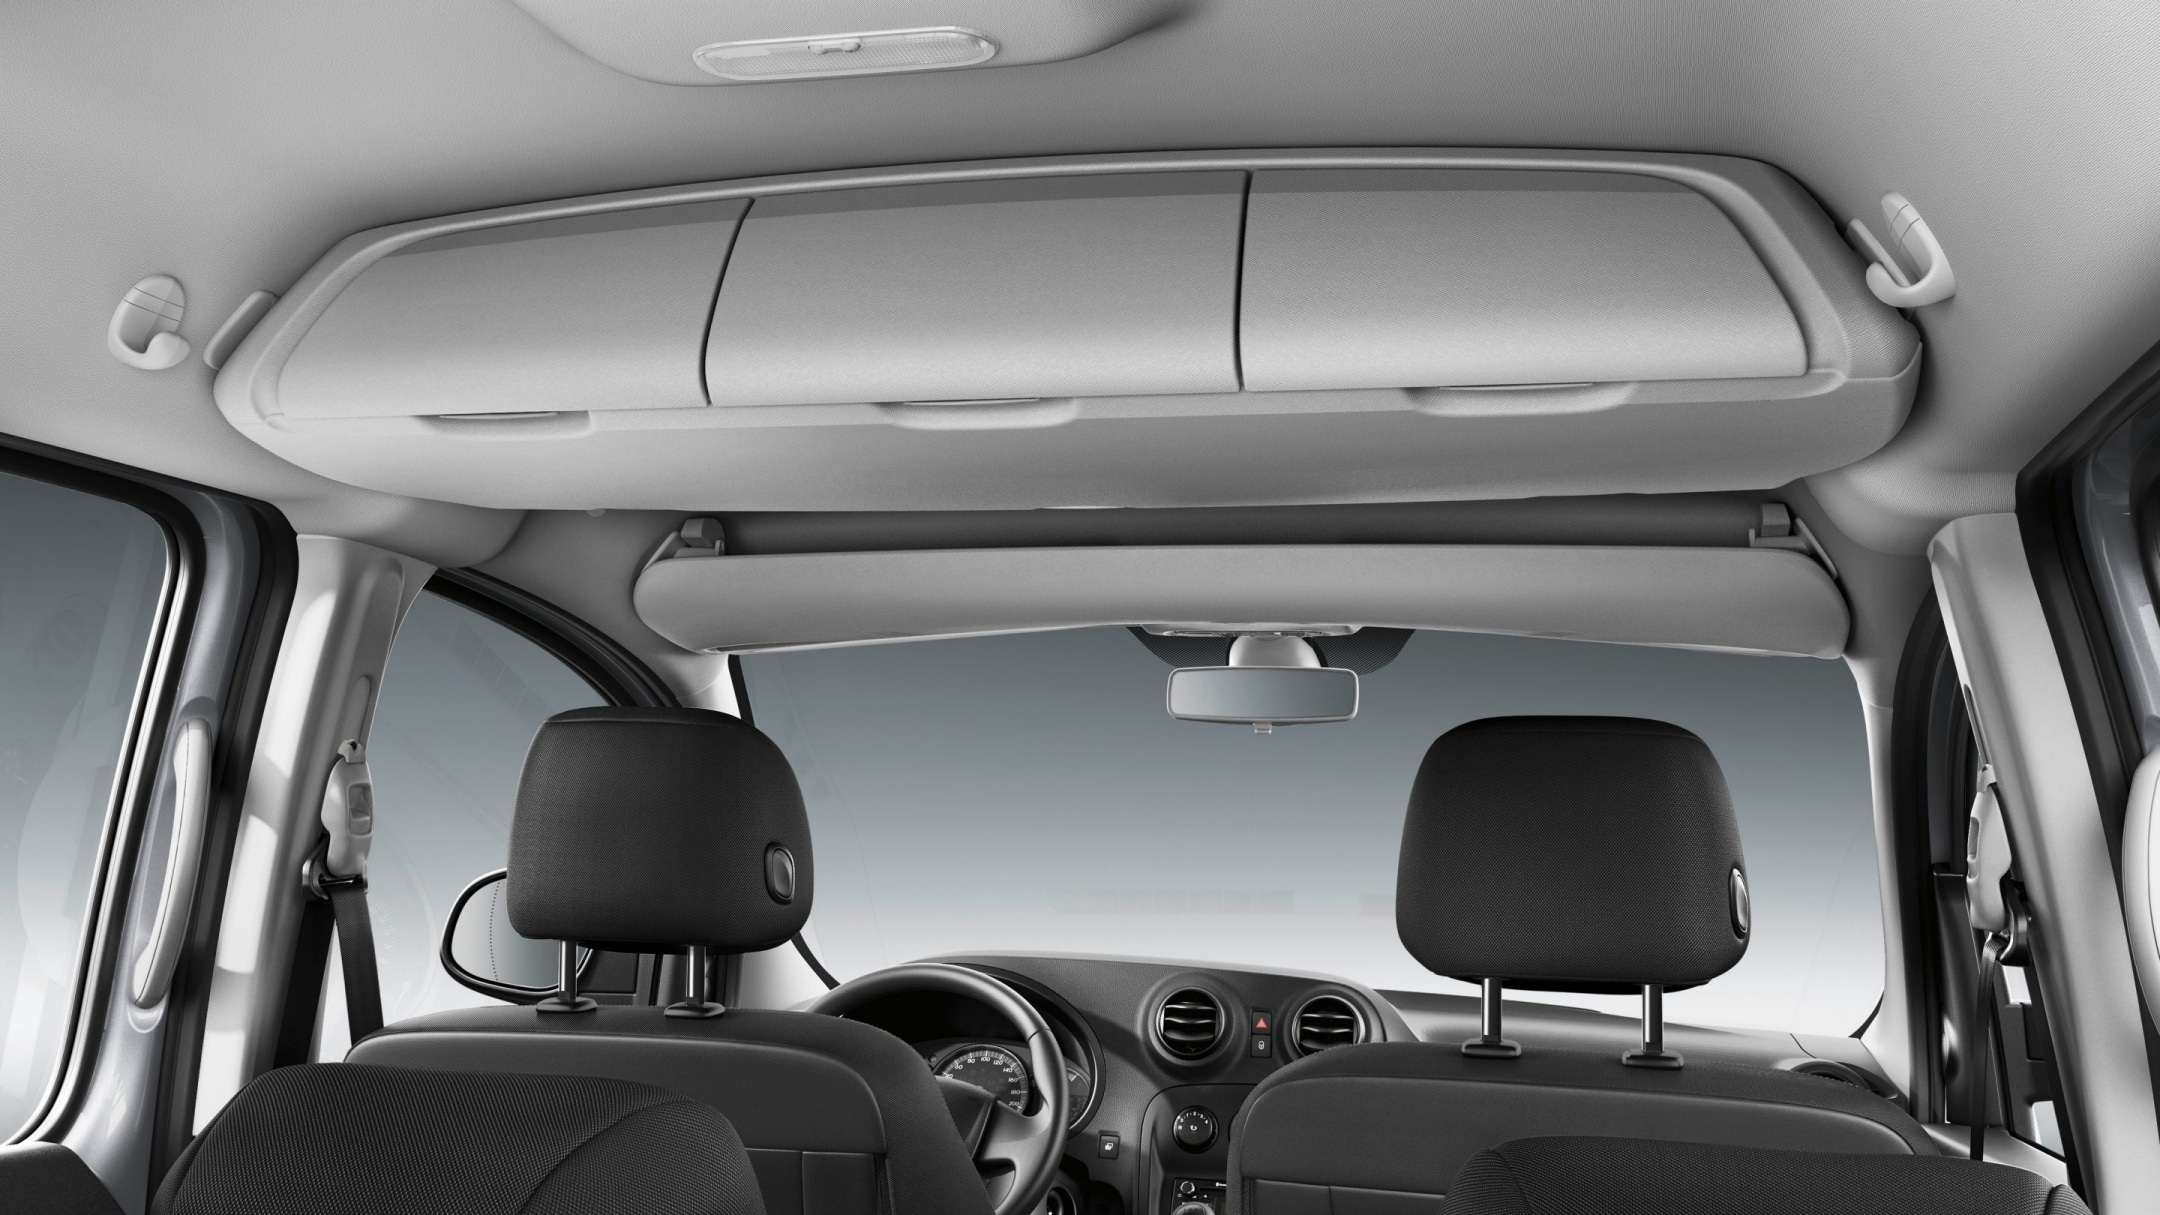 Citan Tourer, roof stowage shelf in the passenger compartment with 3 compartments